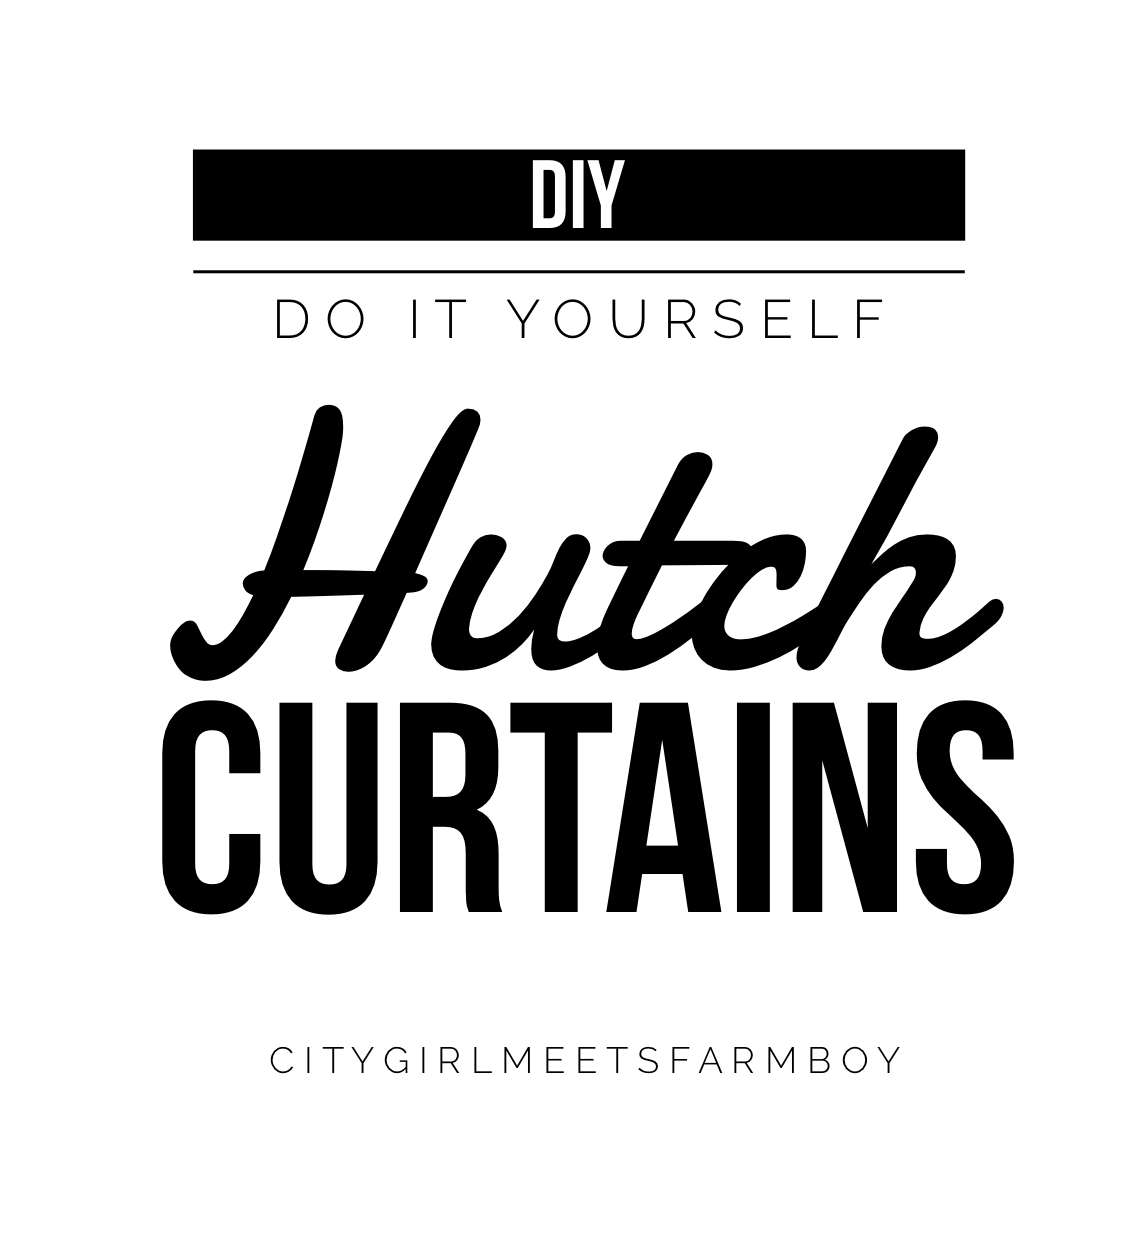 Soon after a soccer ball went flying through the class door and shattered it. One month later the other door was toast.  sc 1 st  Citygirlmeetsfarmboy & Do It Yourself \u2013 Hutch Curtains  